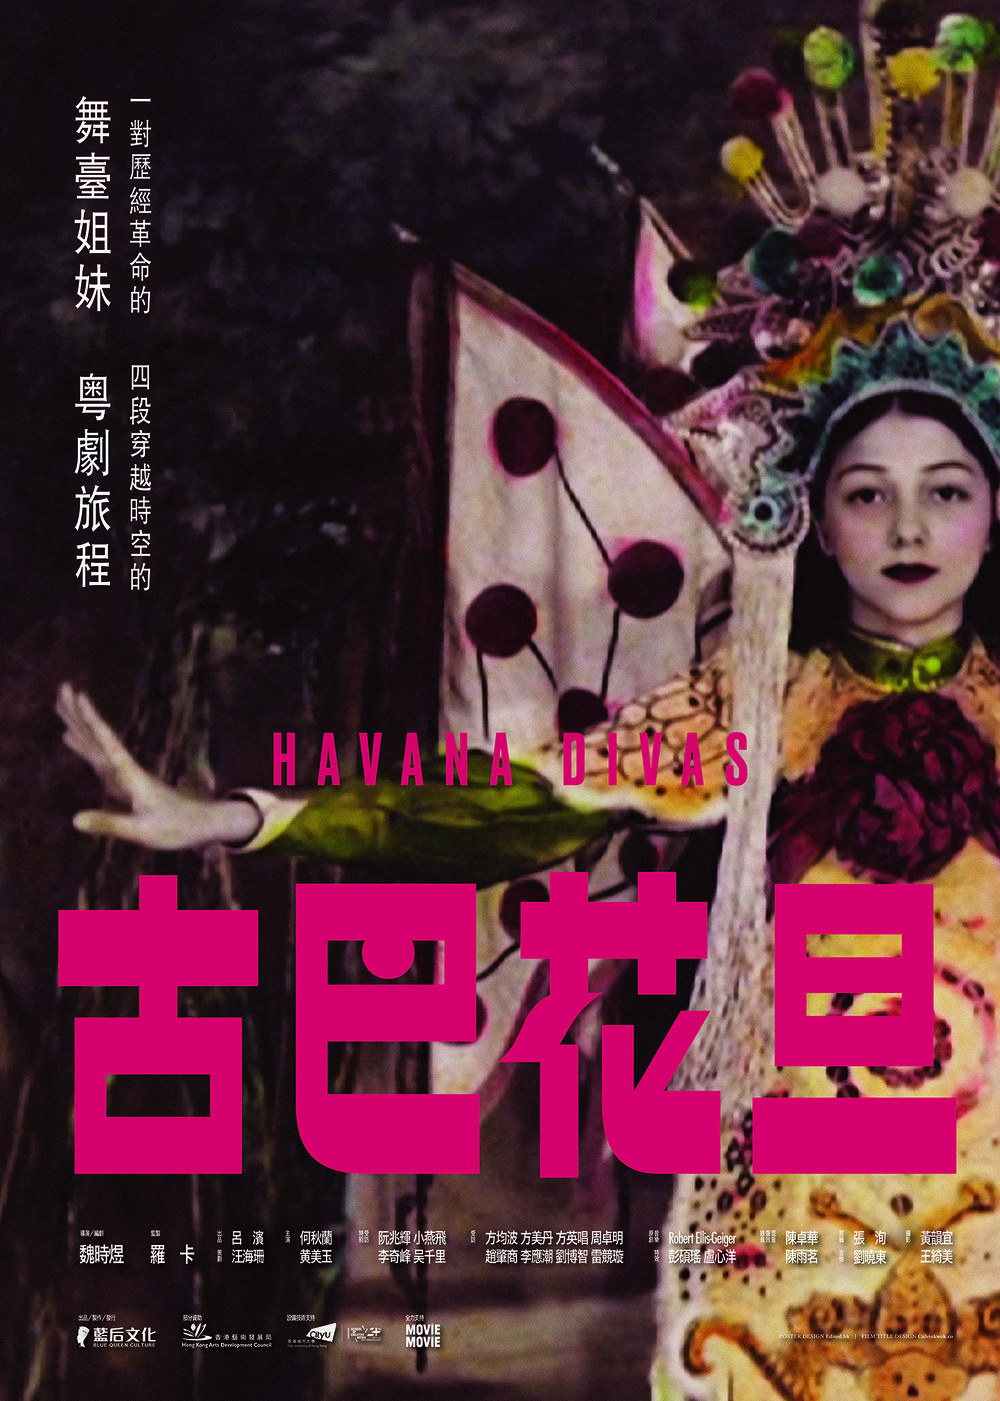 Havana Divas    Caridad Amaran and Georgina Wong learned the art of Cantonese opera in 1930s Havana. Caridad's mentor was her foster father, Julian Fong, who immigrated to Cuba in the 1920s after his family forbade him...   Read More